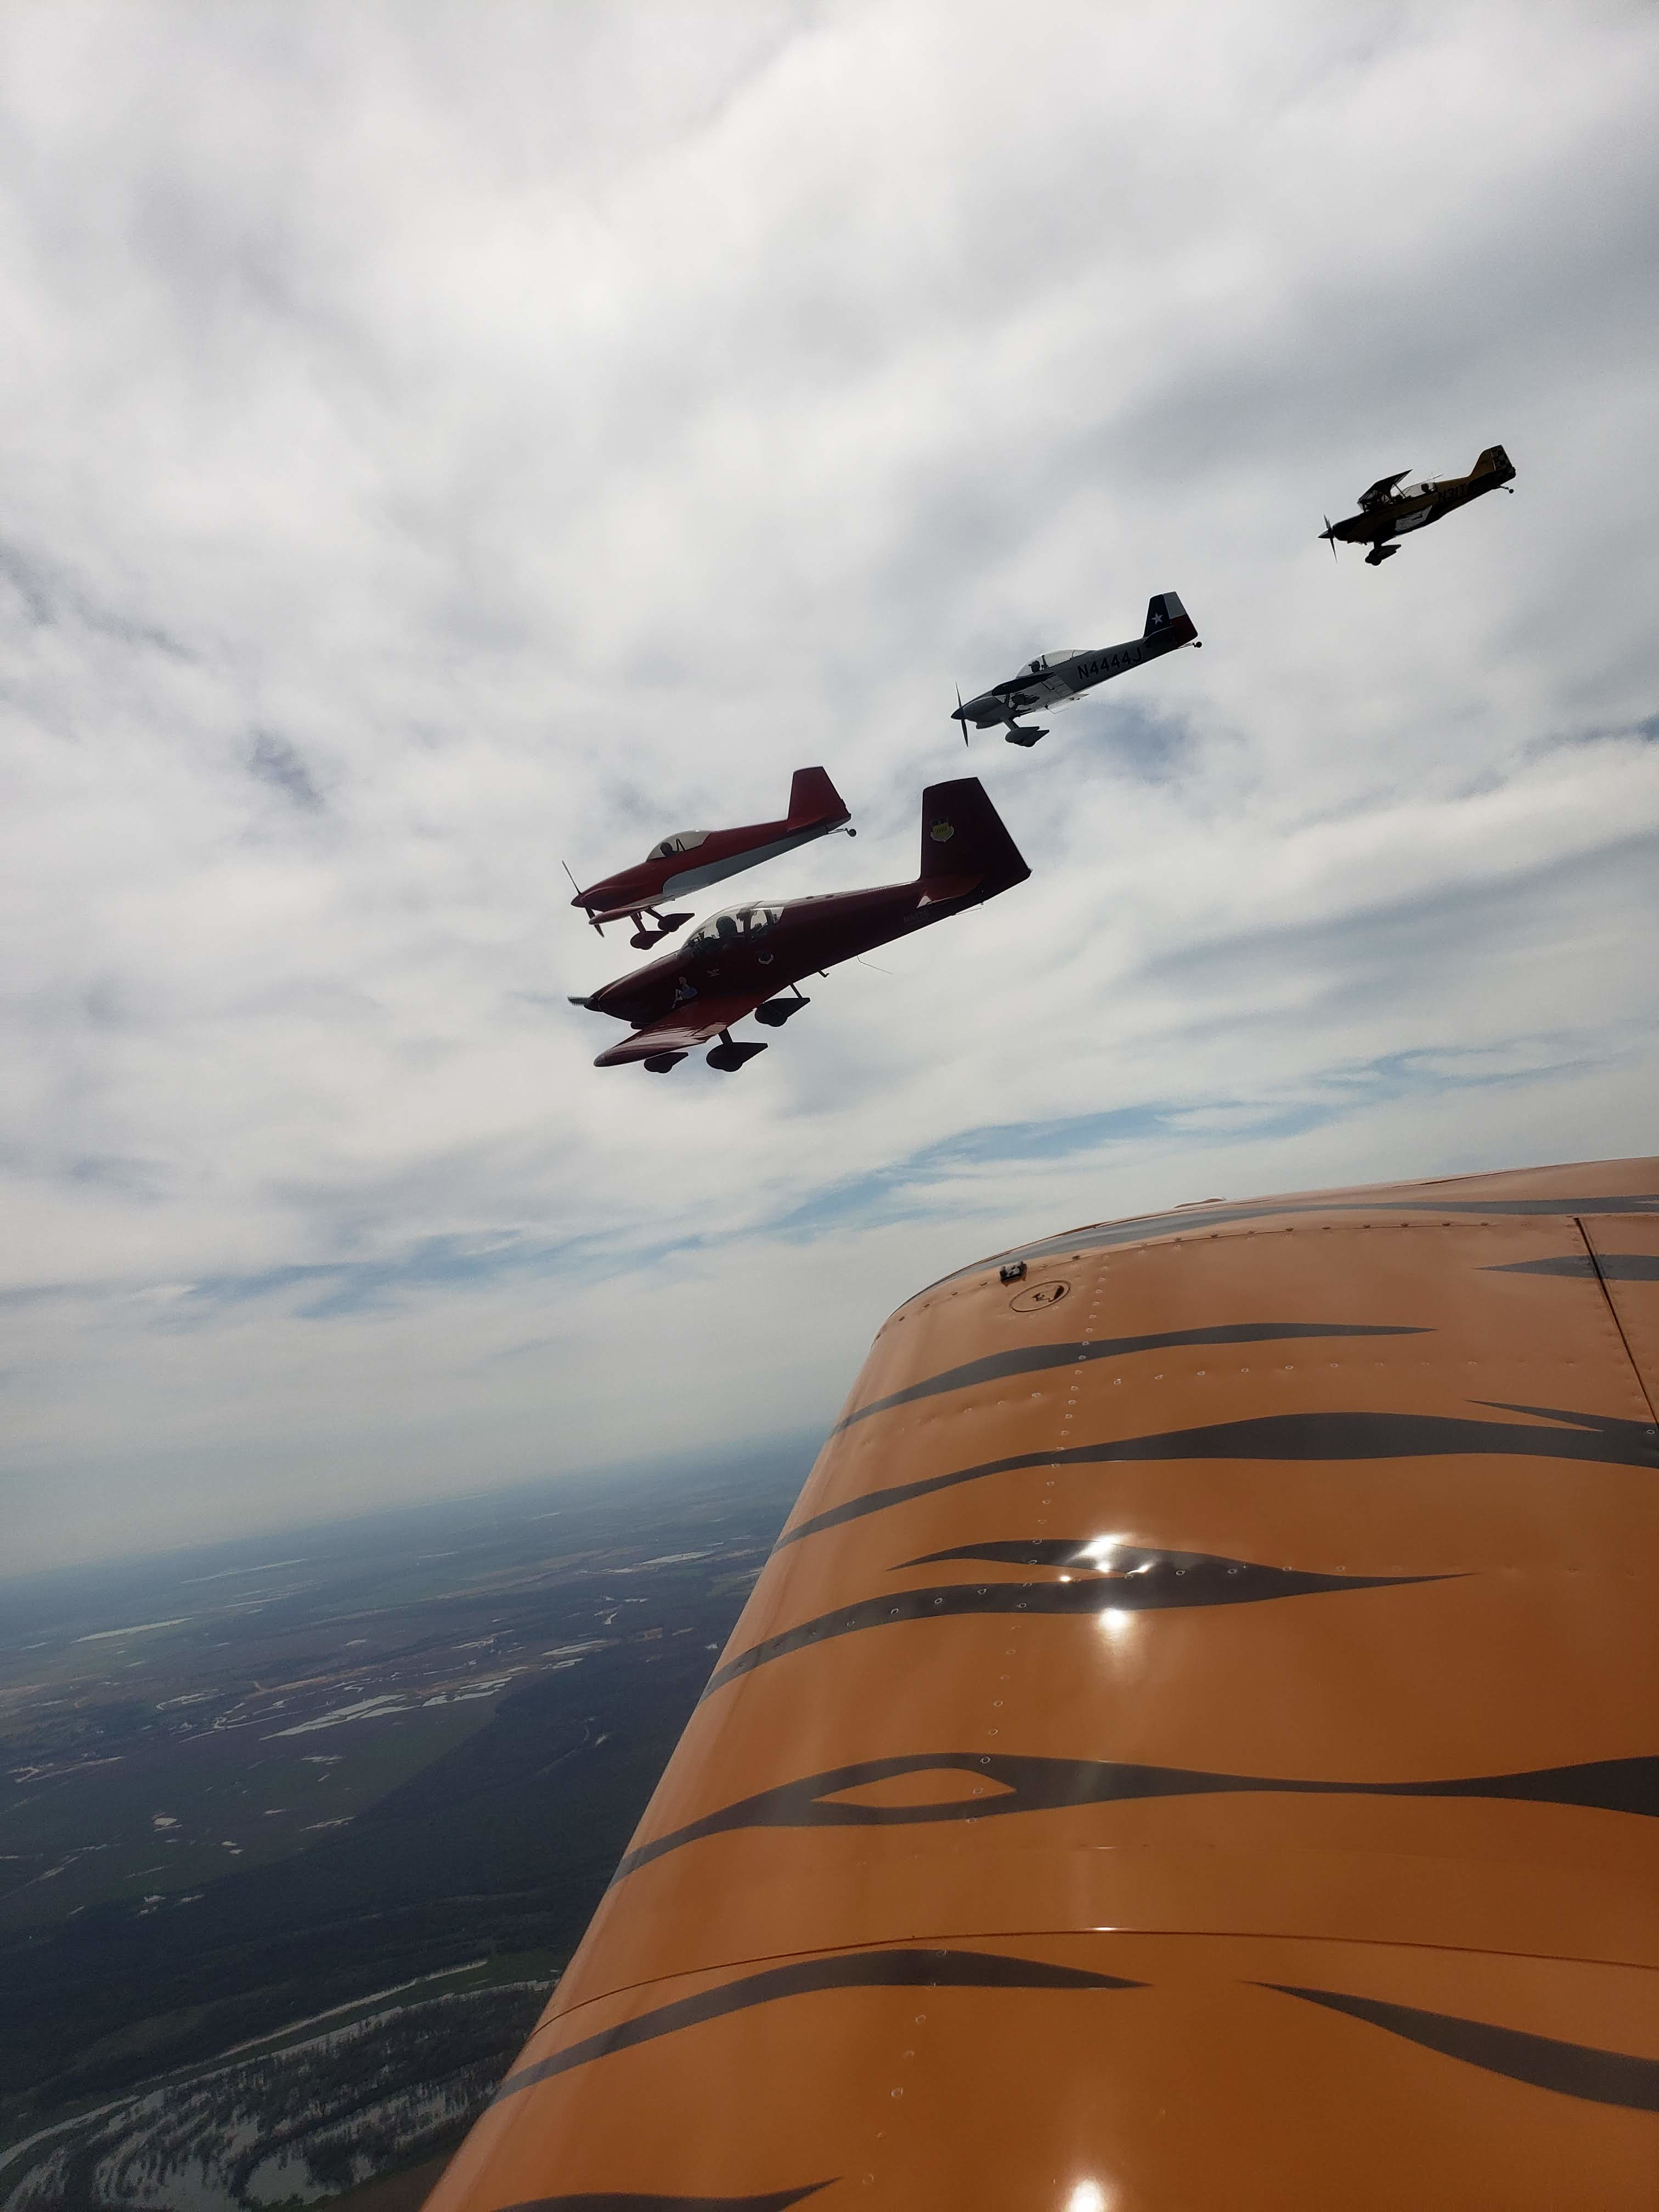 The View from Bloke's T-18 During Formation Maneuvering